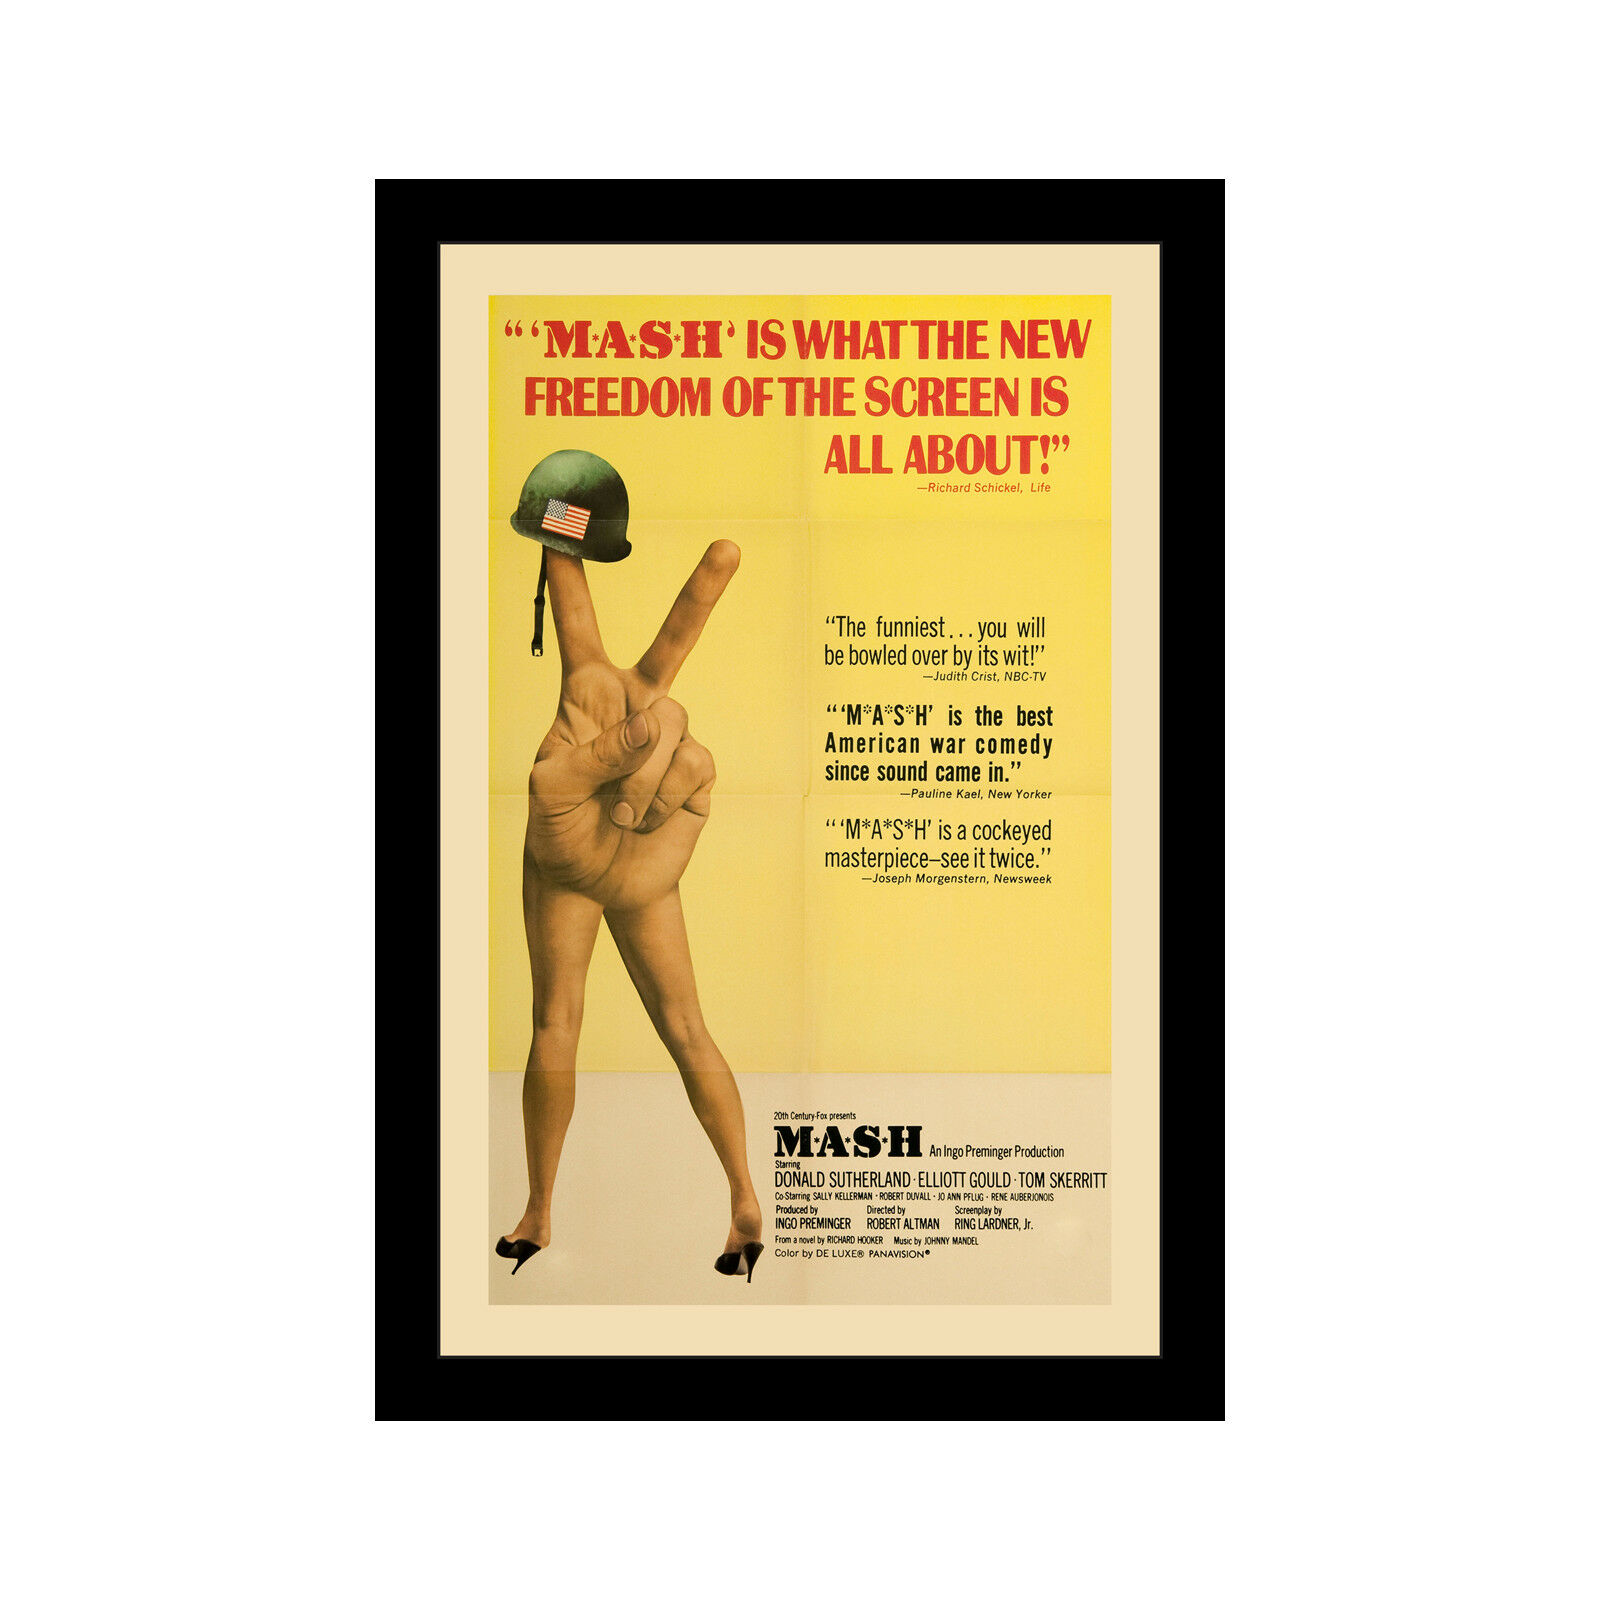 MASH - 11x17 Framed Movie affiche by Wallspace